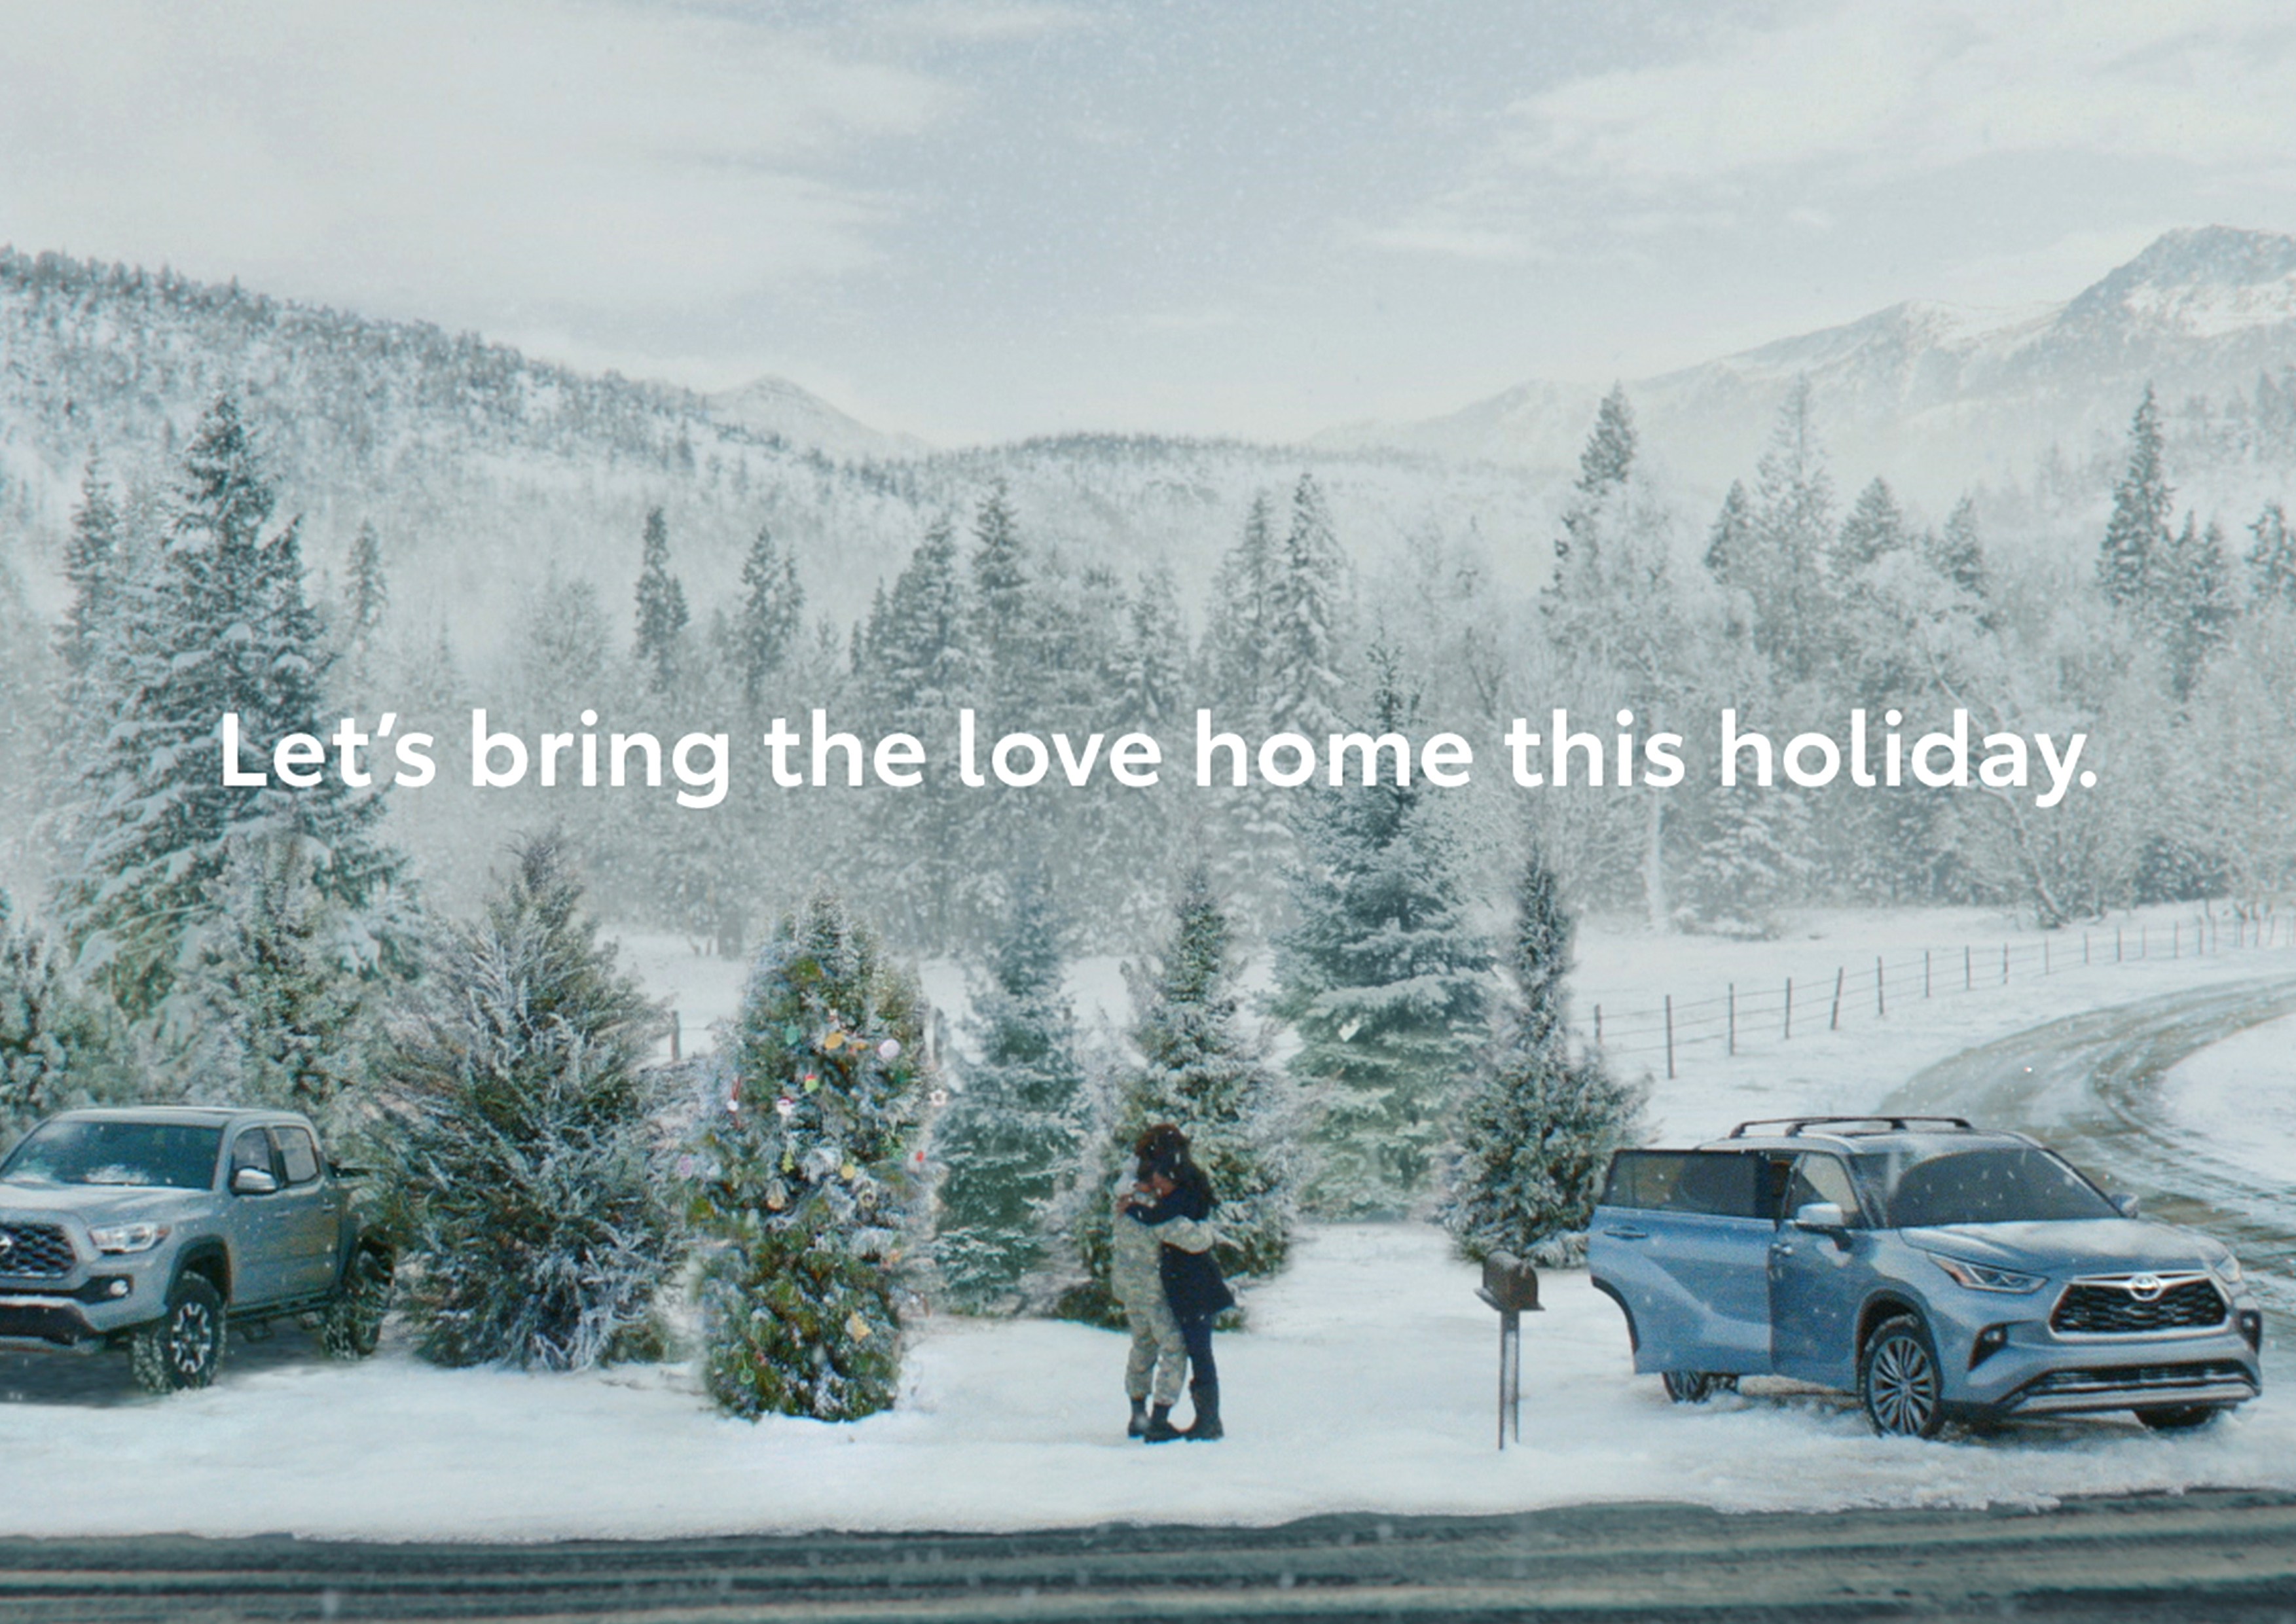 Acura Christmas Commercial 2021 Toyota Debuts Annual Heartwarming Holiday Commercial During Nbc S Christmas In Rockefeller Center Toyota Usa Newsroom